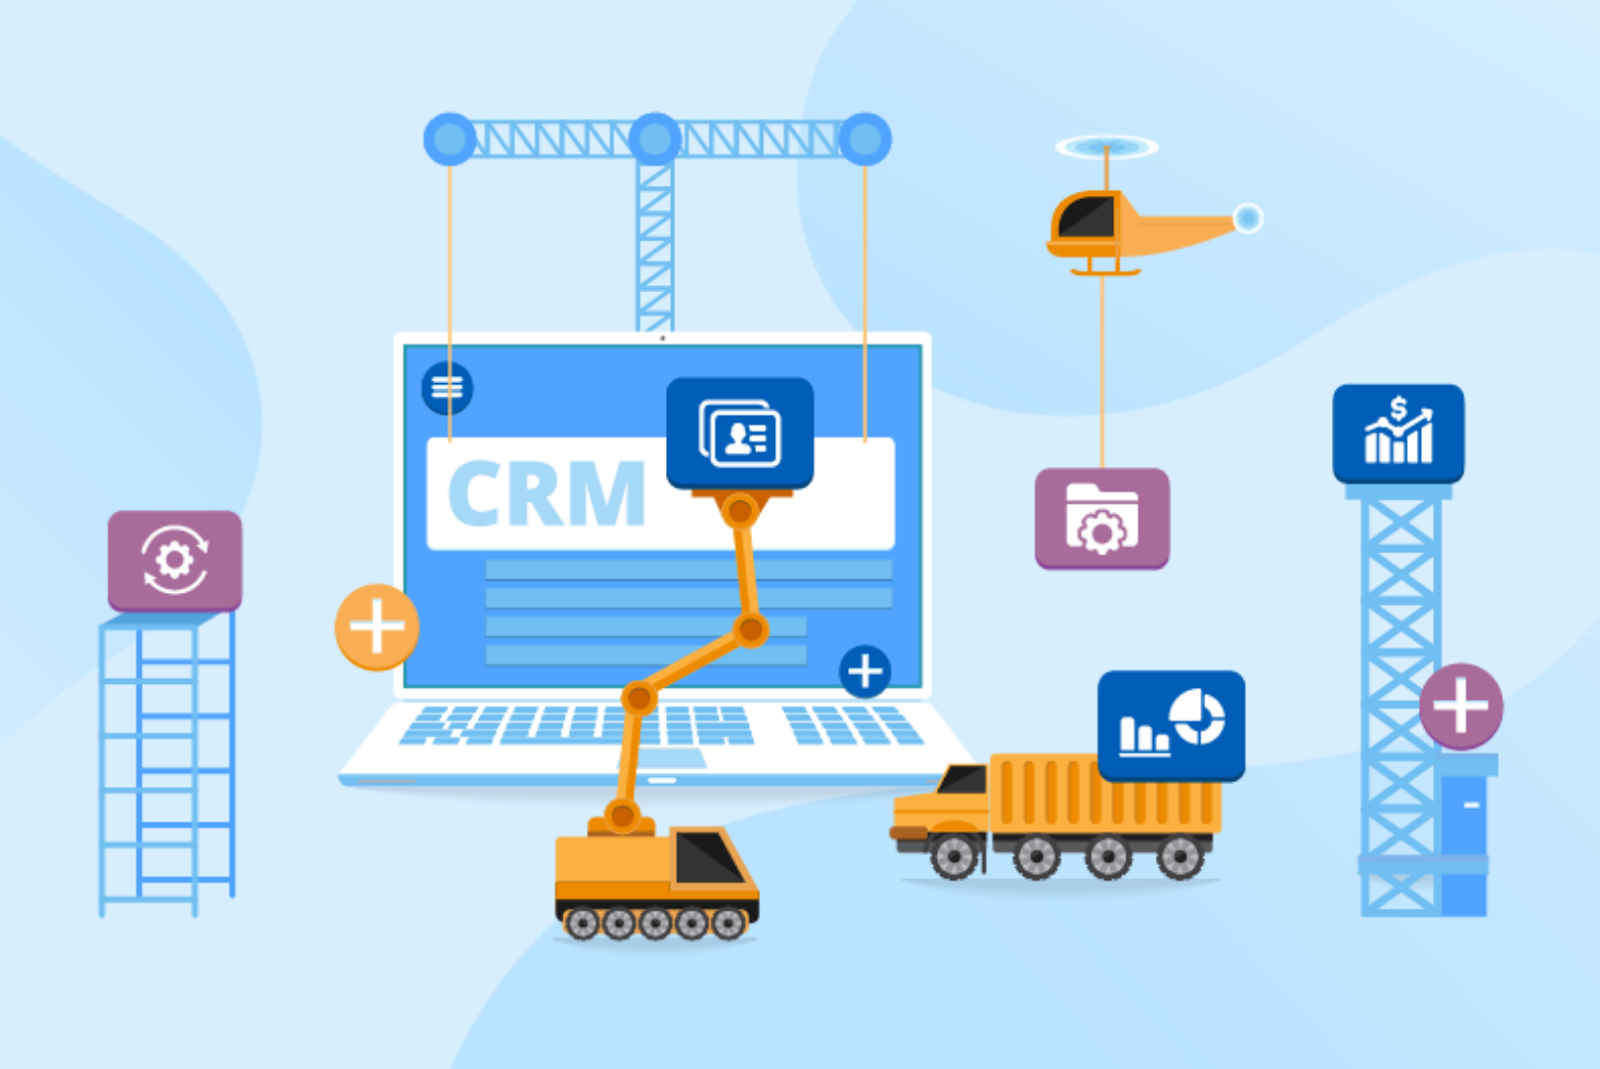 Build a custom crm software